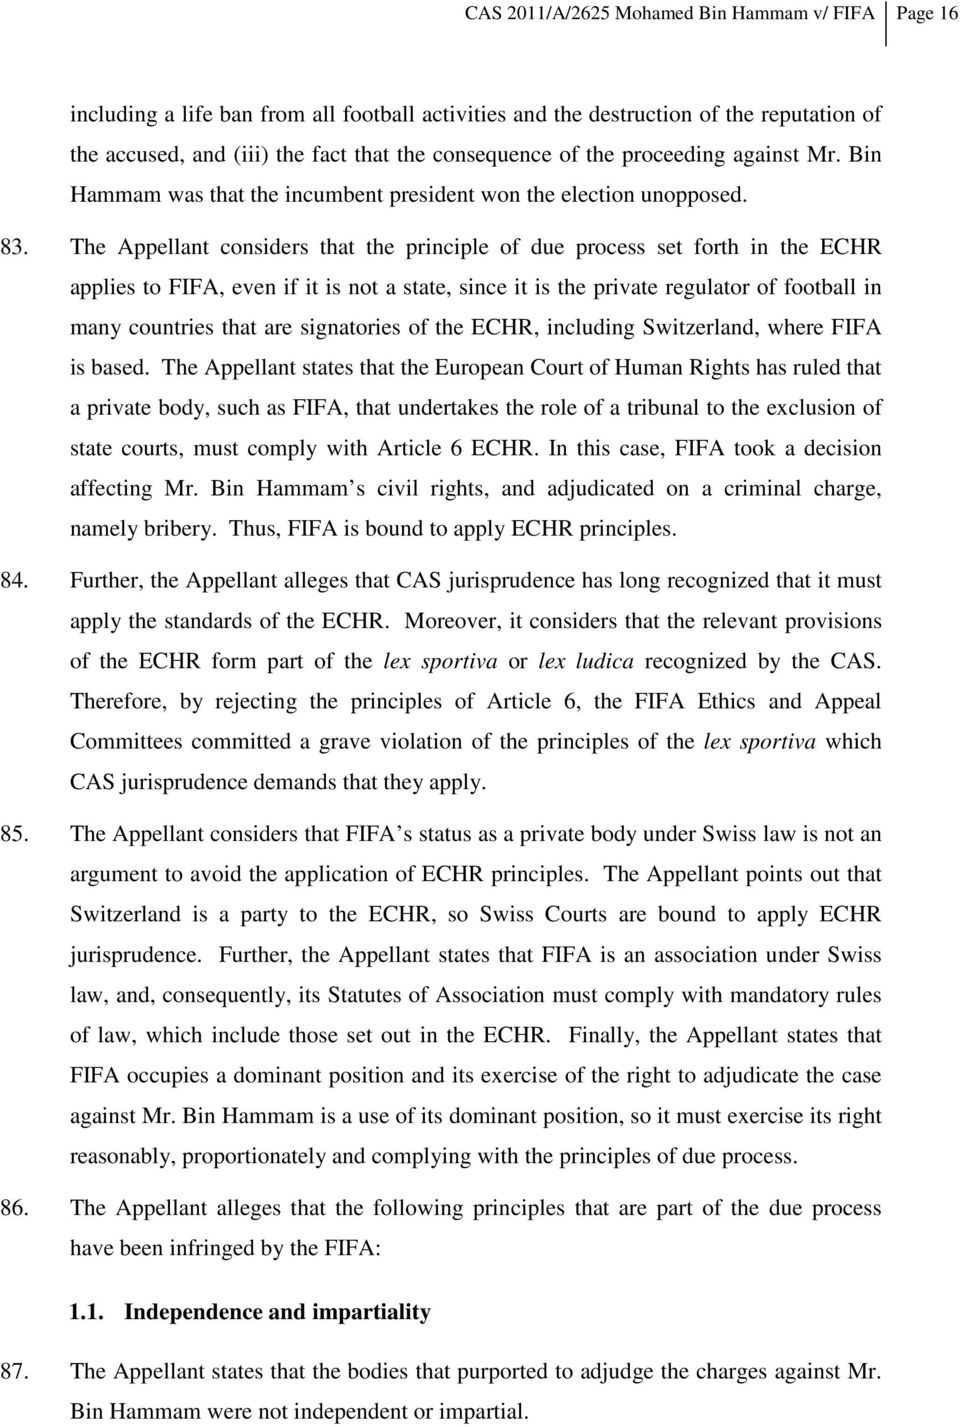 The Appellant considers that the principle of due process set forth in the ECHR applies to FIFA, even if it is not a state, since it is the private regulator of football in many countries that are